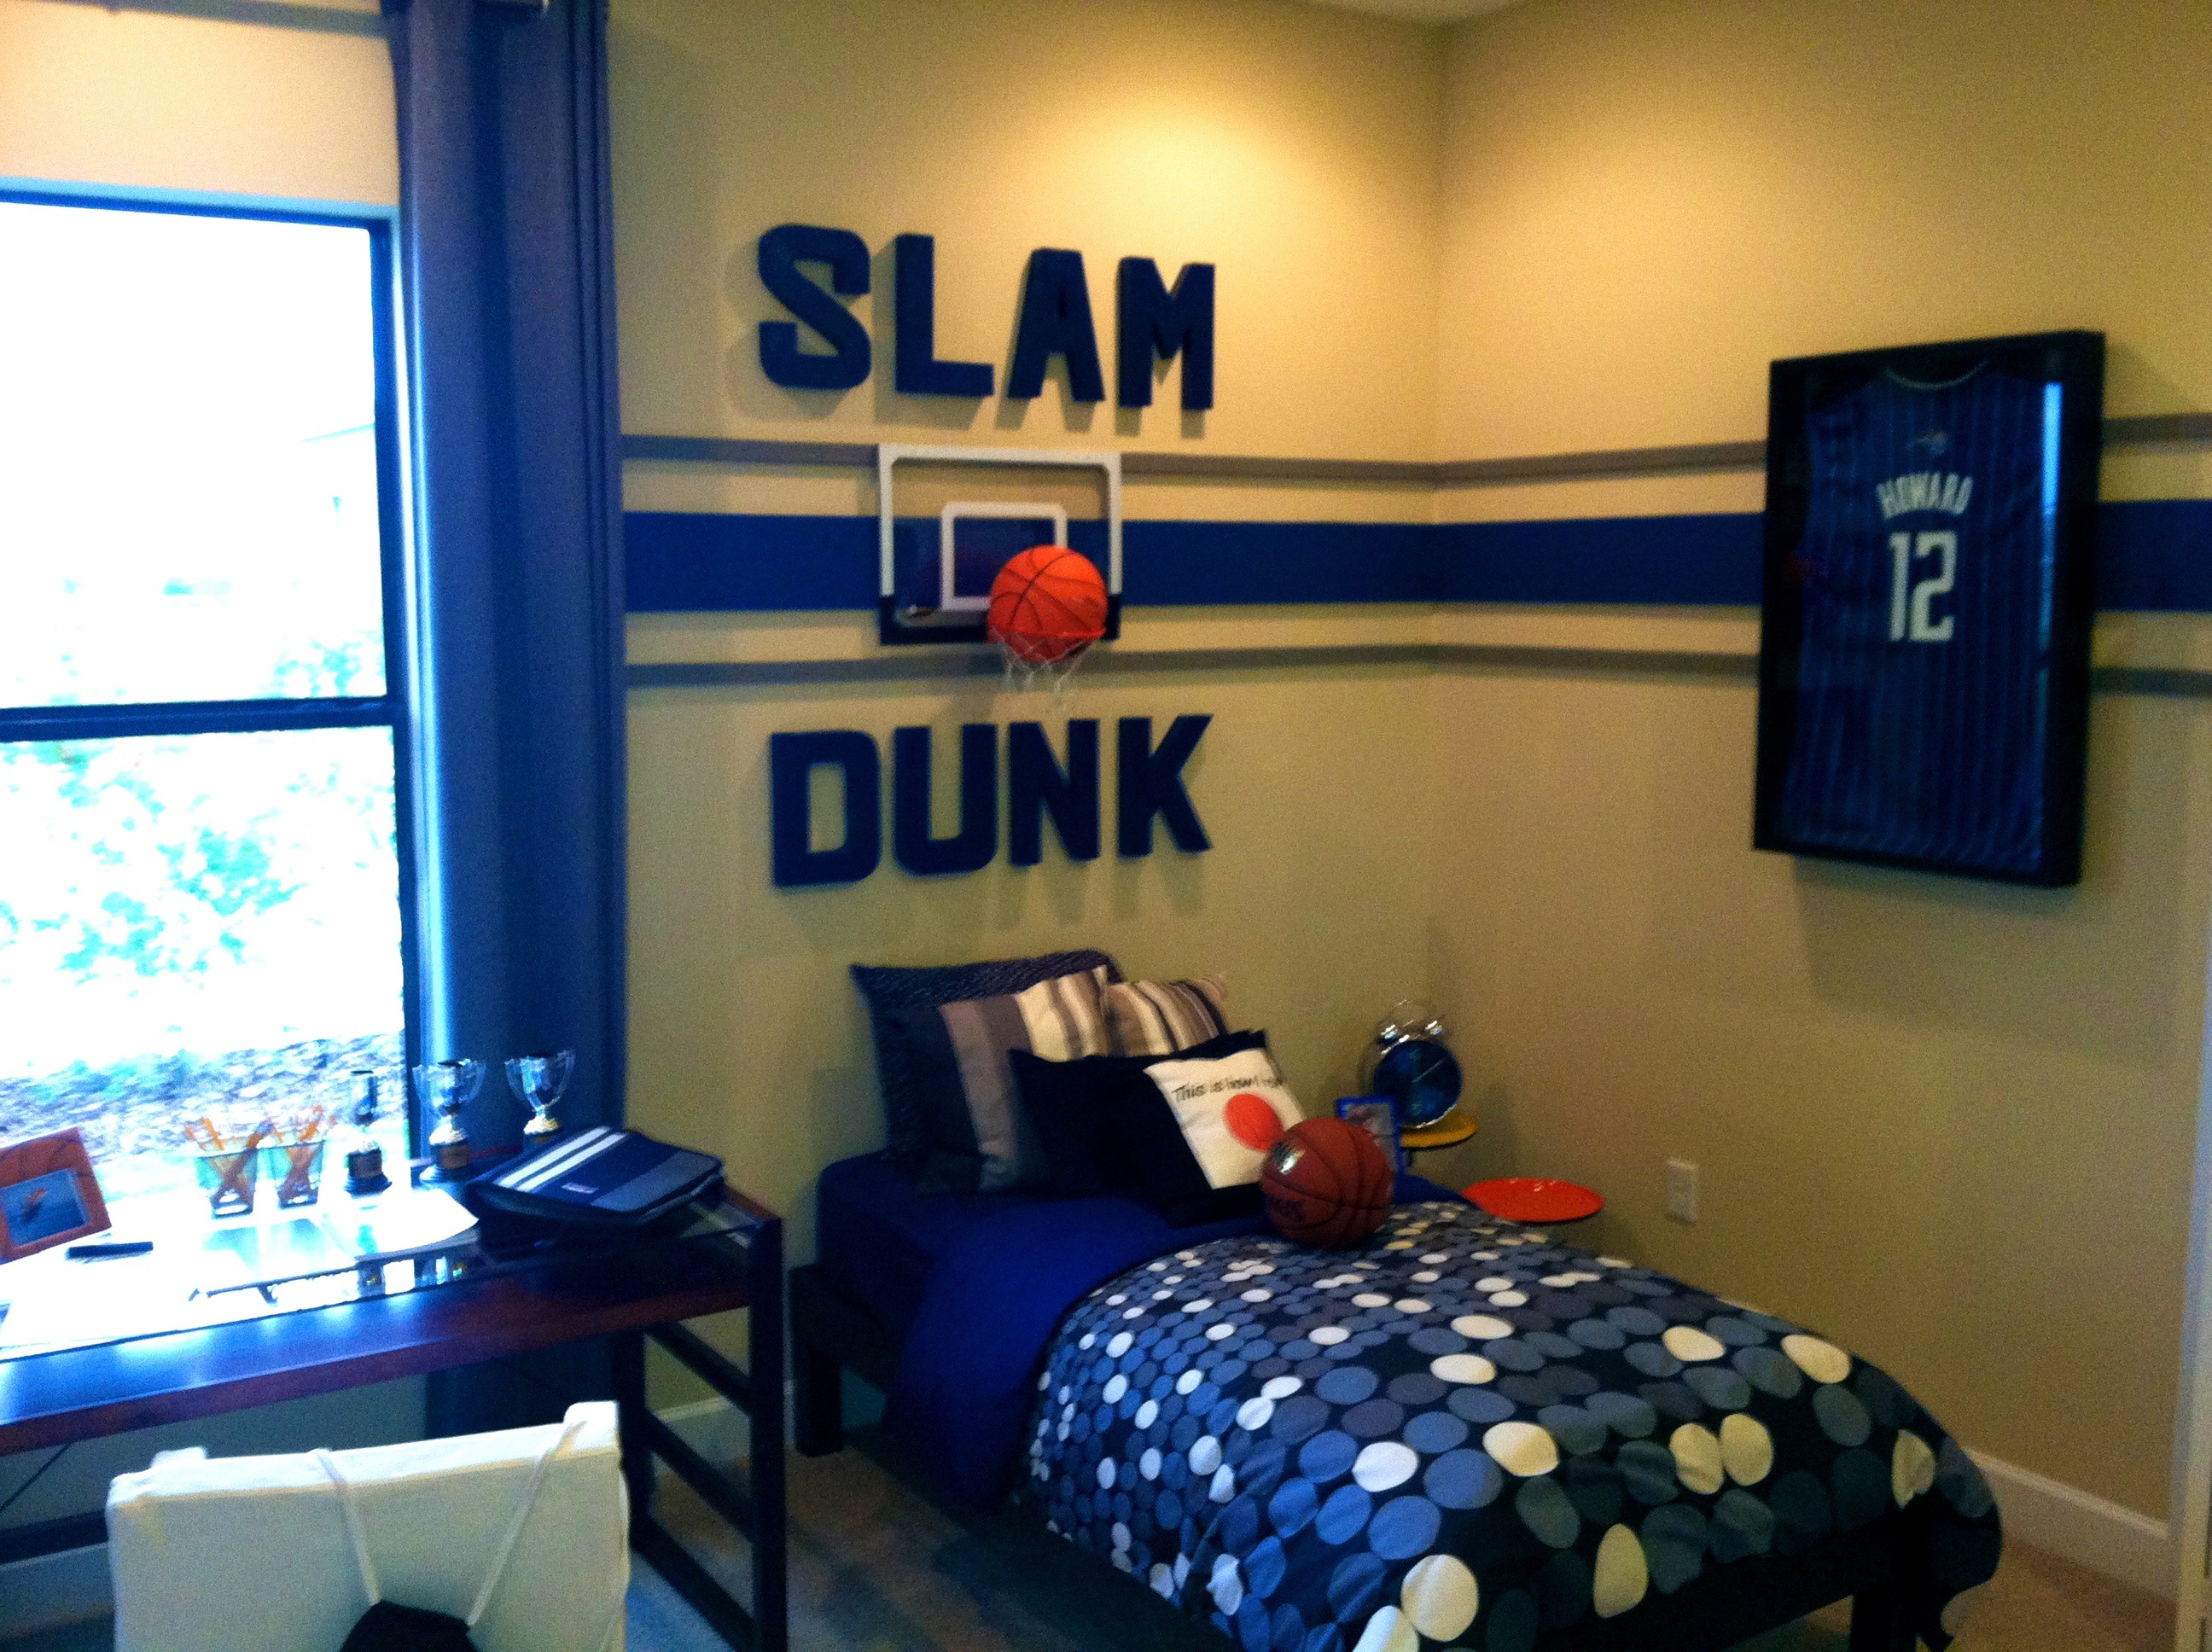 Cool game room ideas best video game rooms decor or design - Small room decor ideas ...